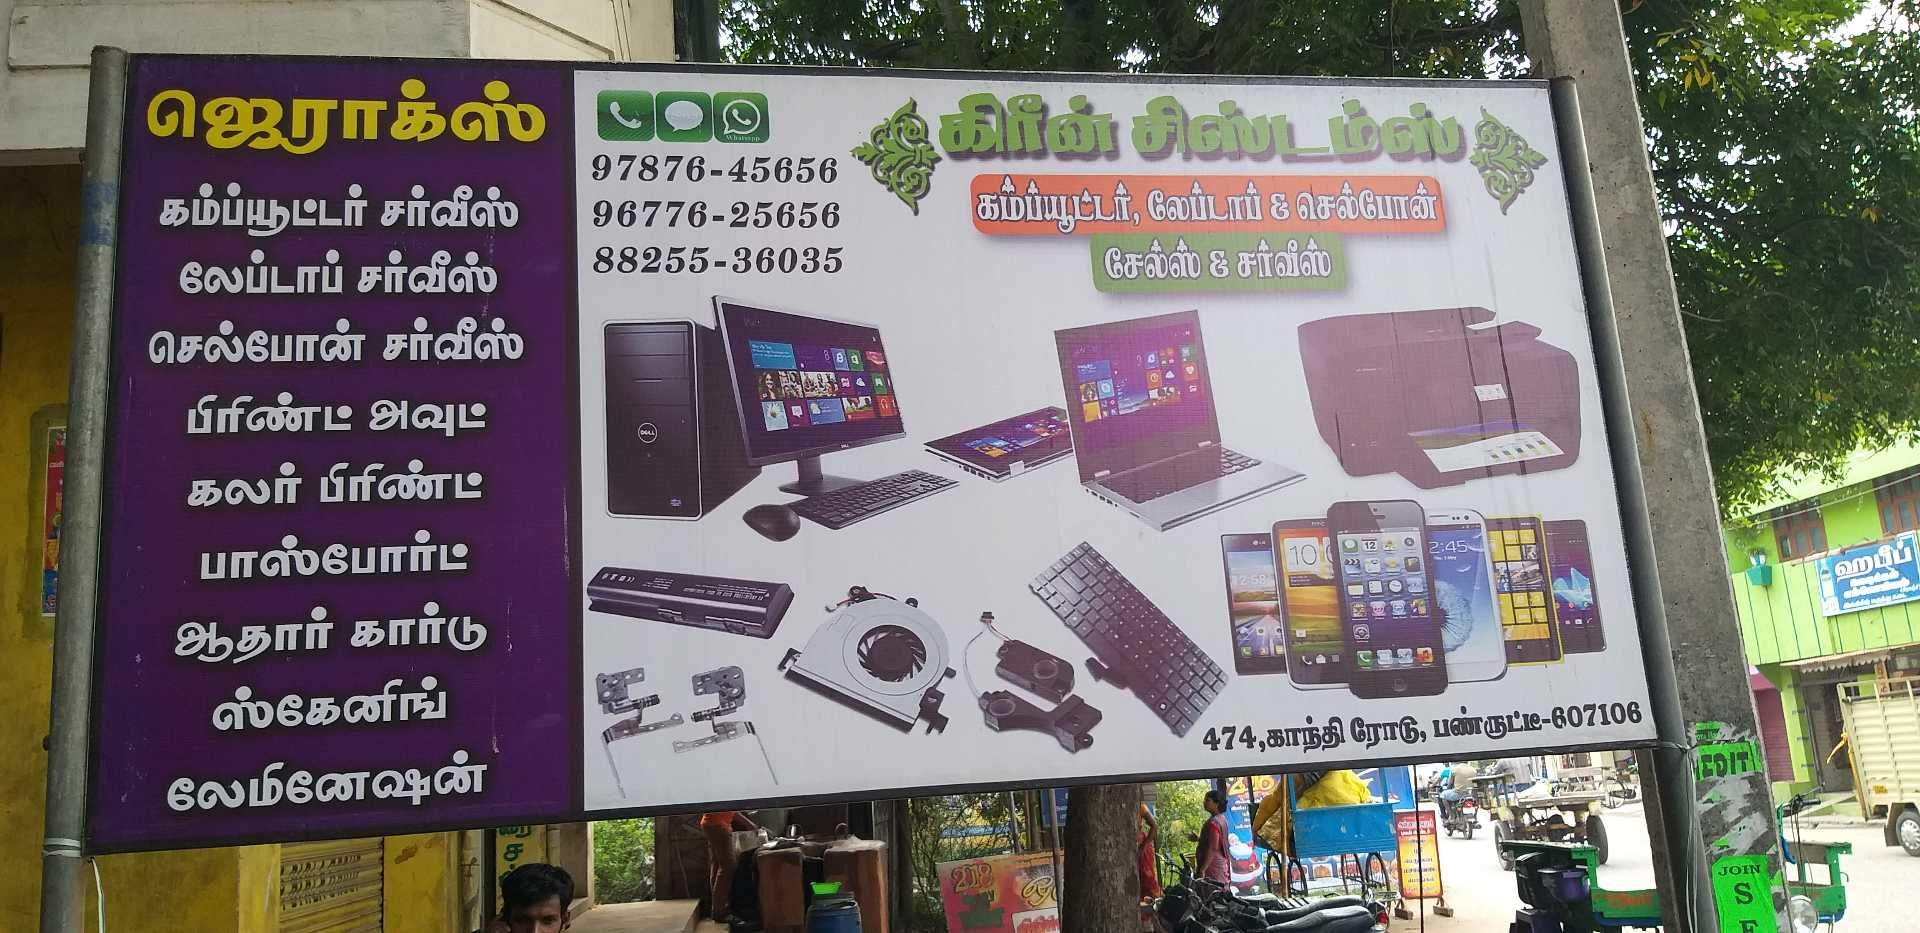 Top Computer Repair & Services in Muthandikuppam - Best